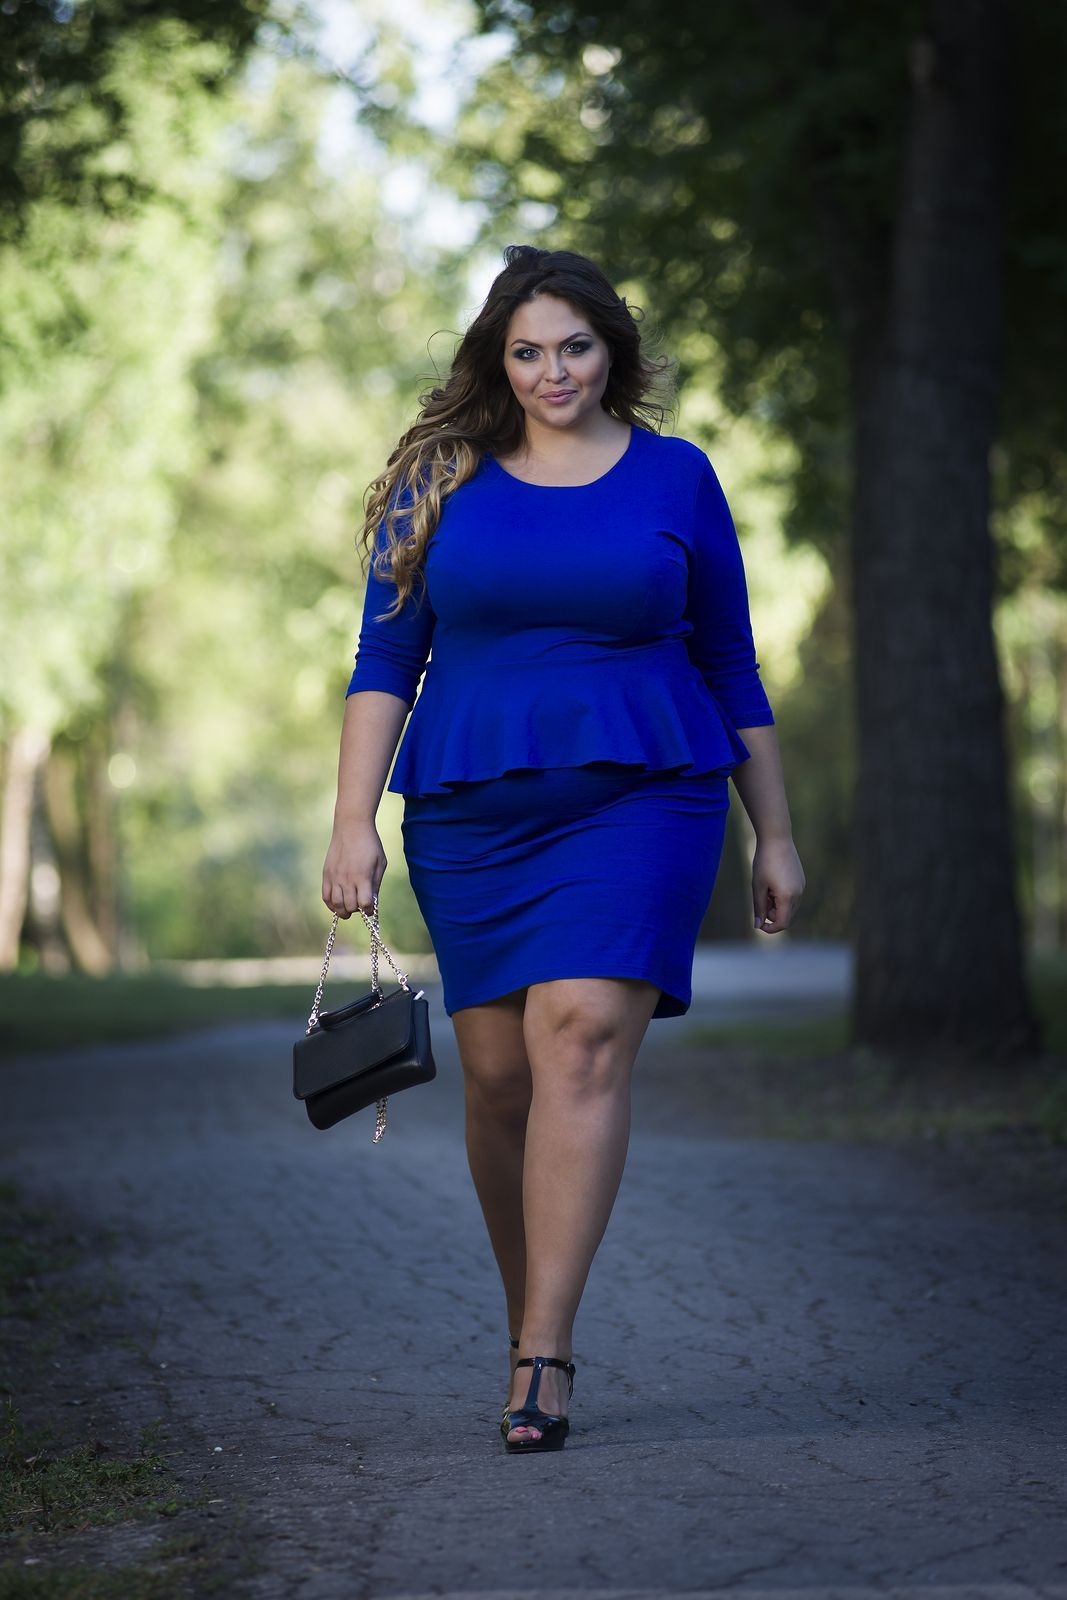 dd88c0b0a955c Young beautiful caucasian plus size fashion model in blue dress outdoors  xxl woman on nature full